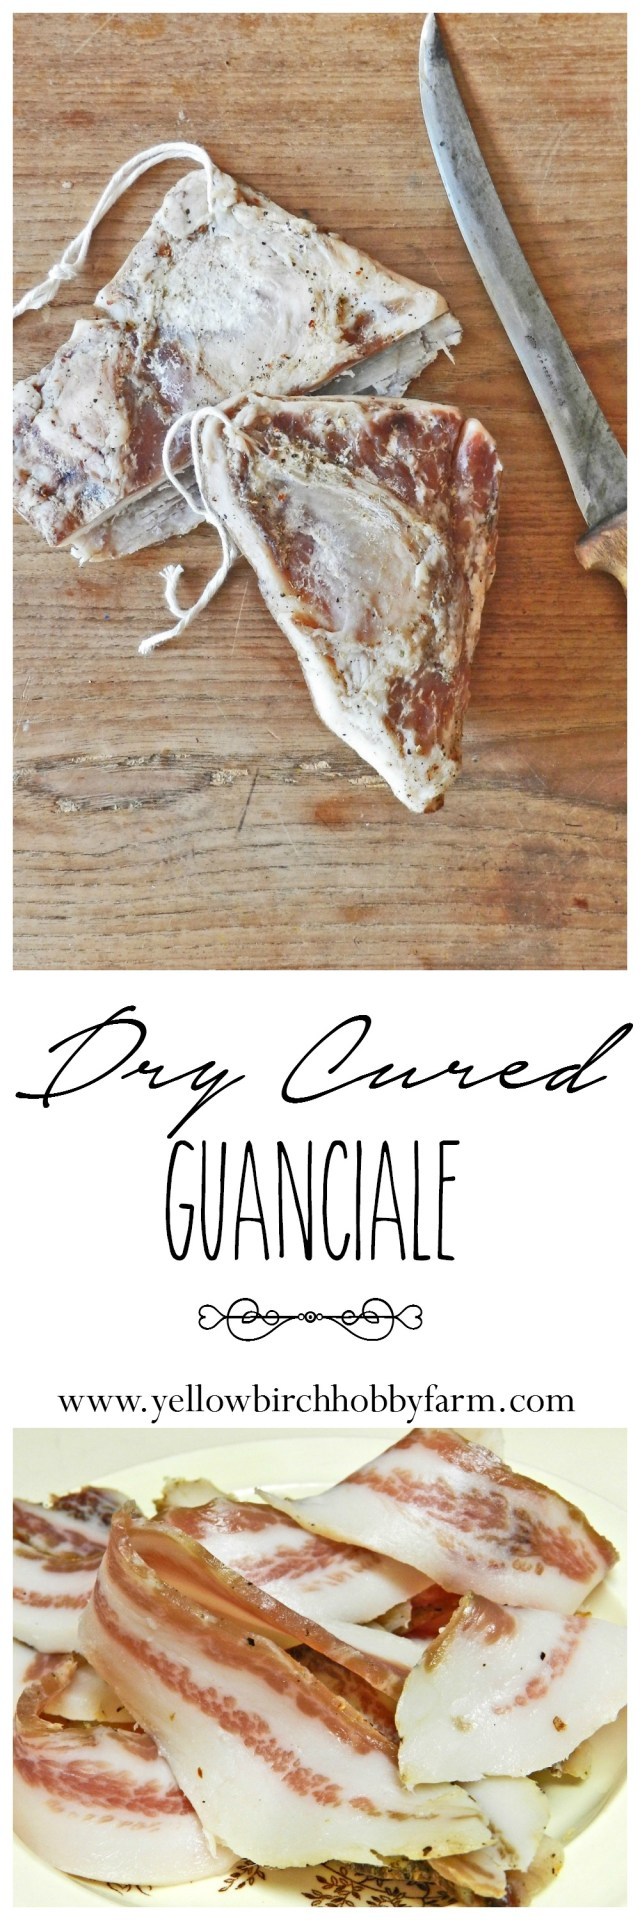 dry cured guanciale- yellow birch hobby farm